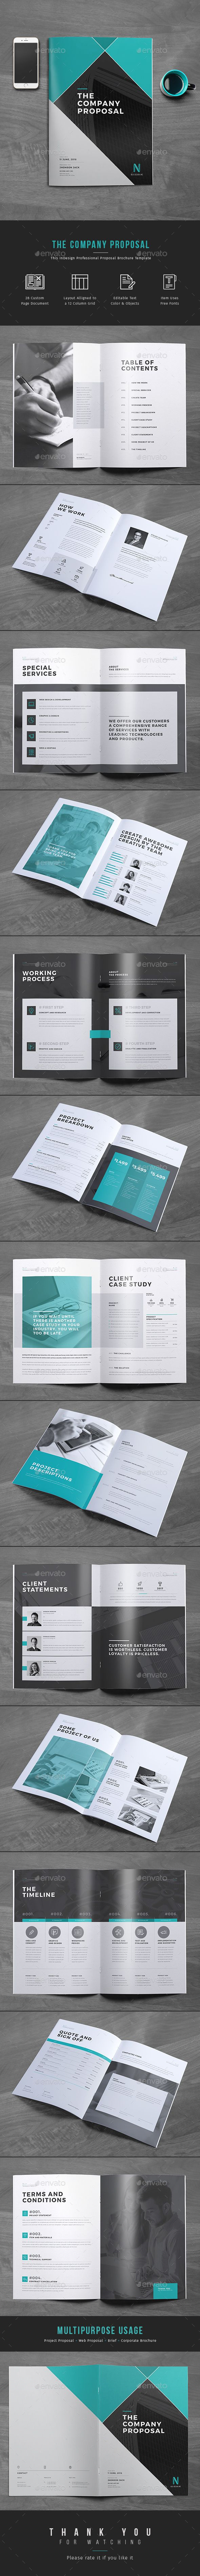 Proposal Design | Download Now https://graphicriver.net/item/proposal/17087638?ref=themedevisers